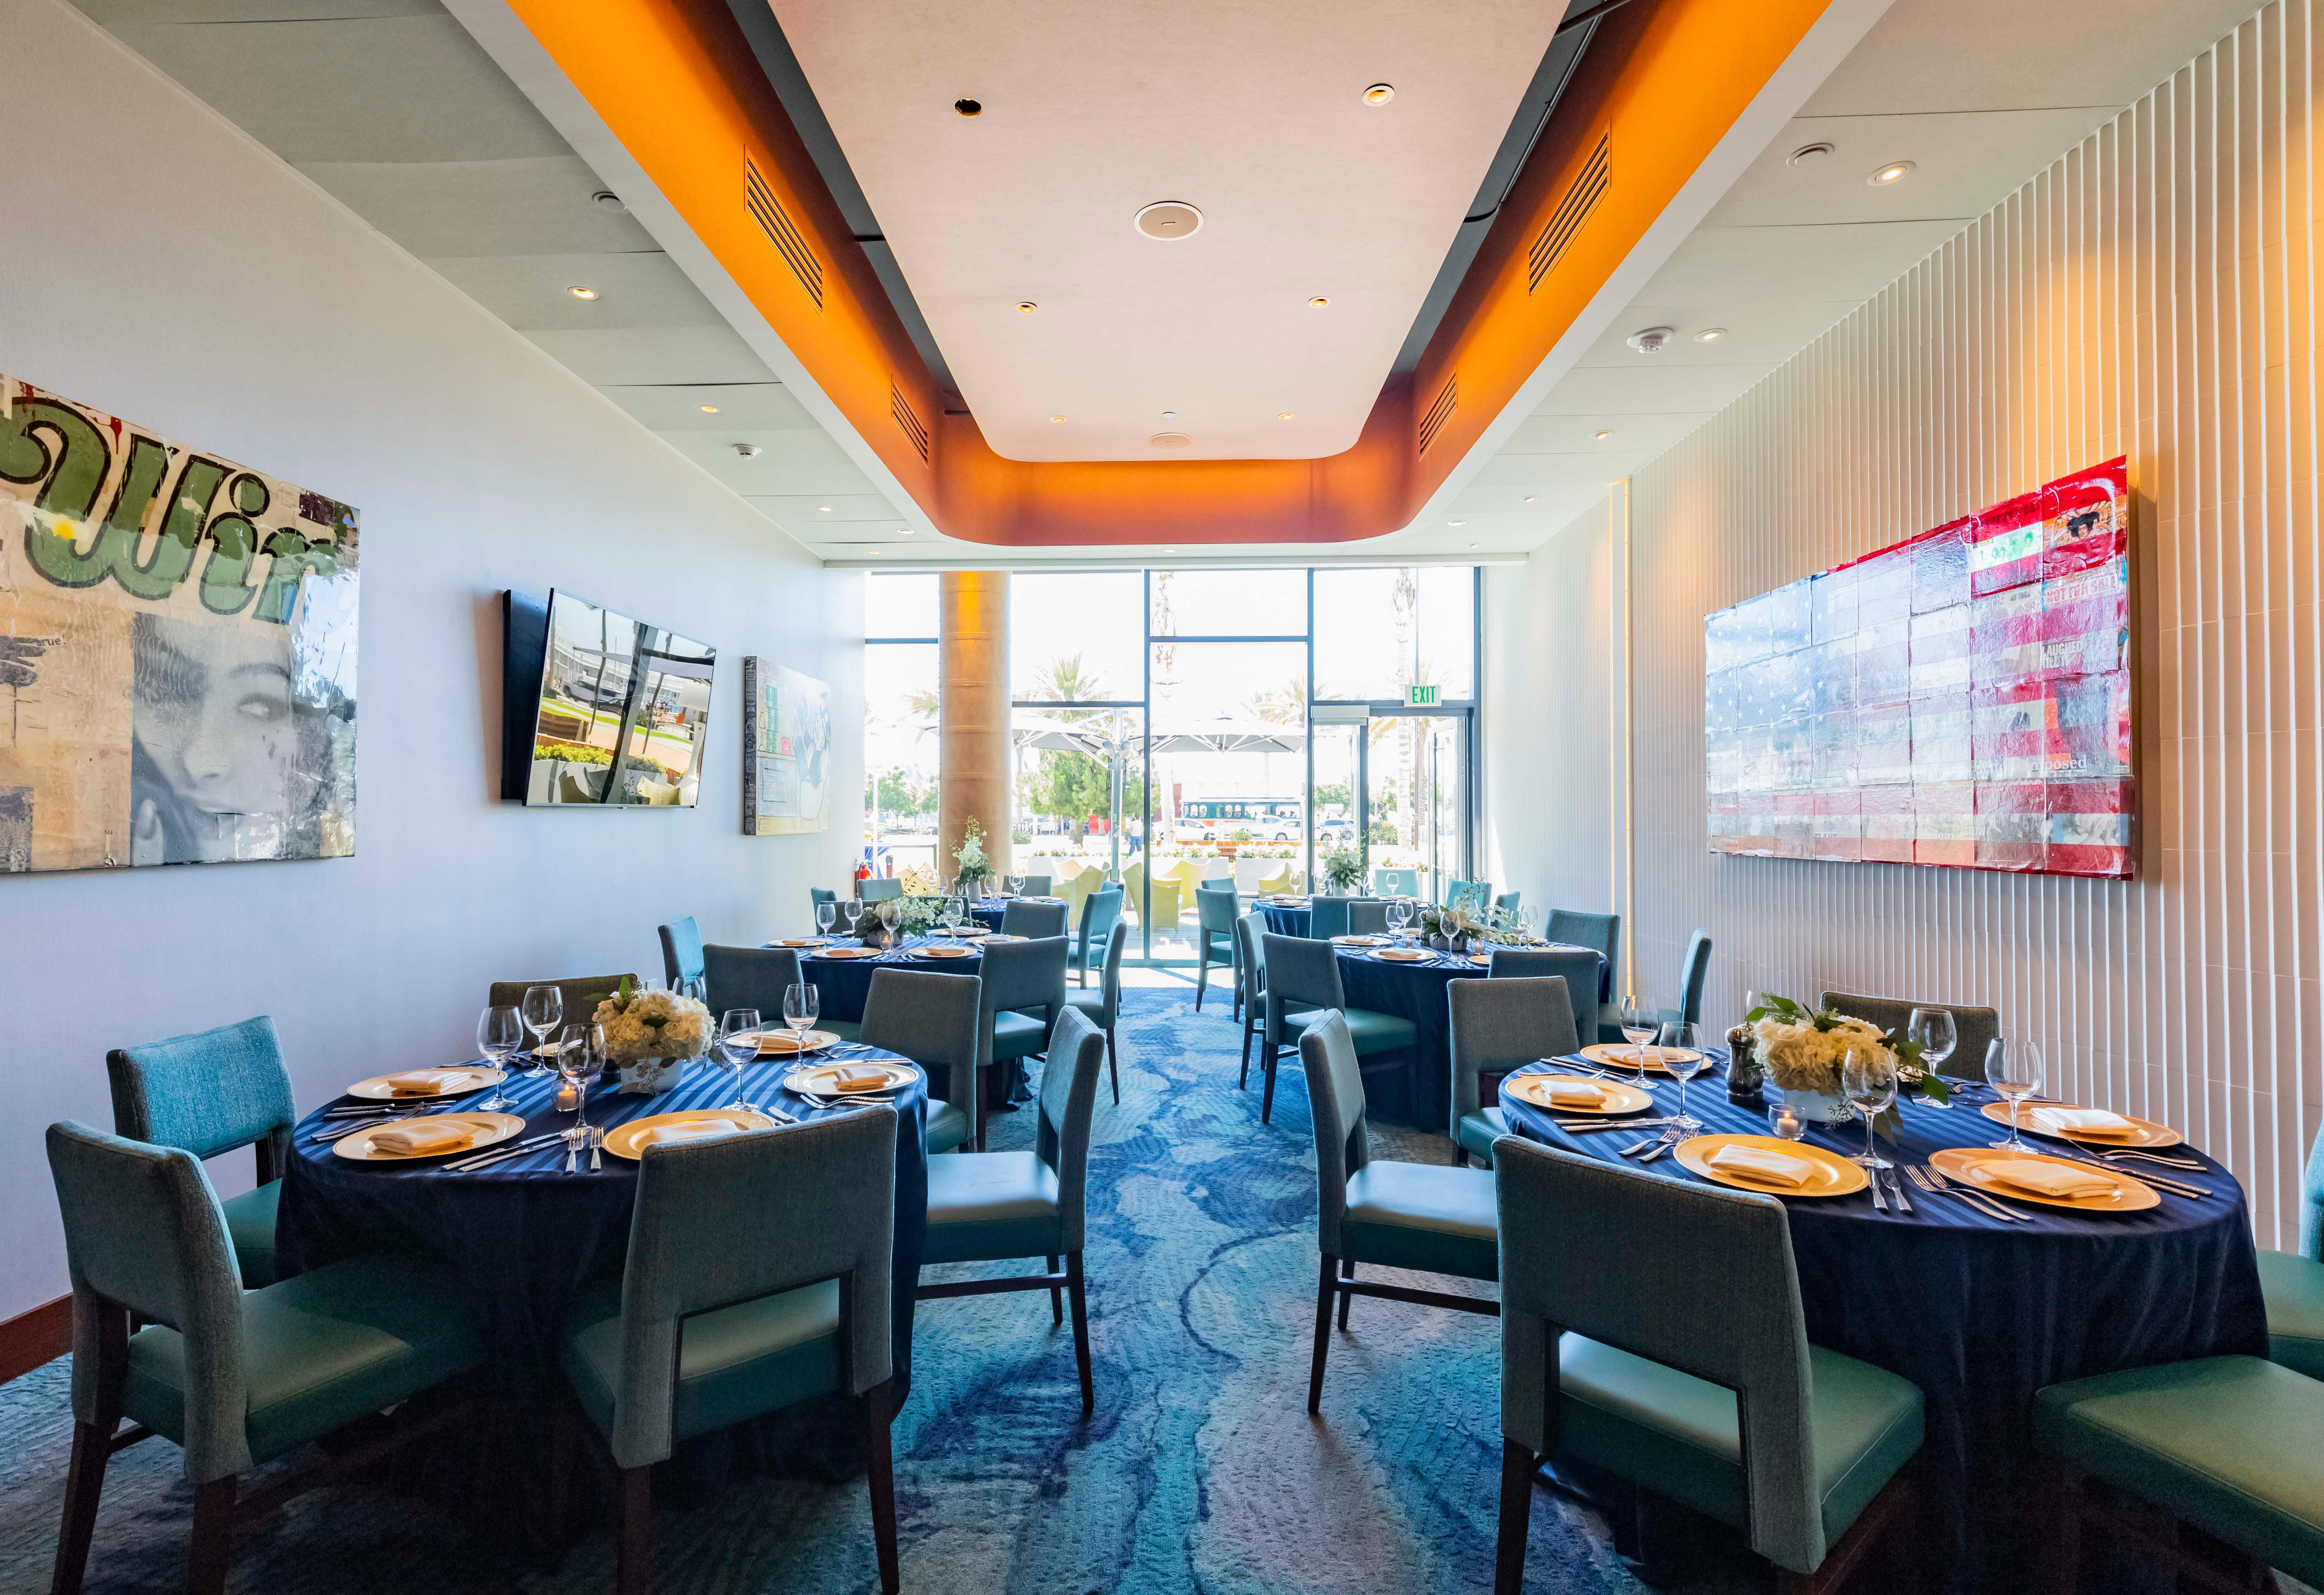 Del Frisco's Double Eagle Steakhouse San Diego Harbor Room private dining room